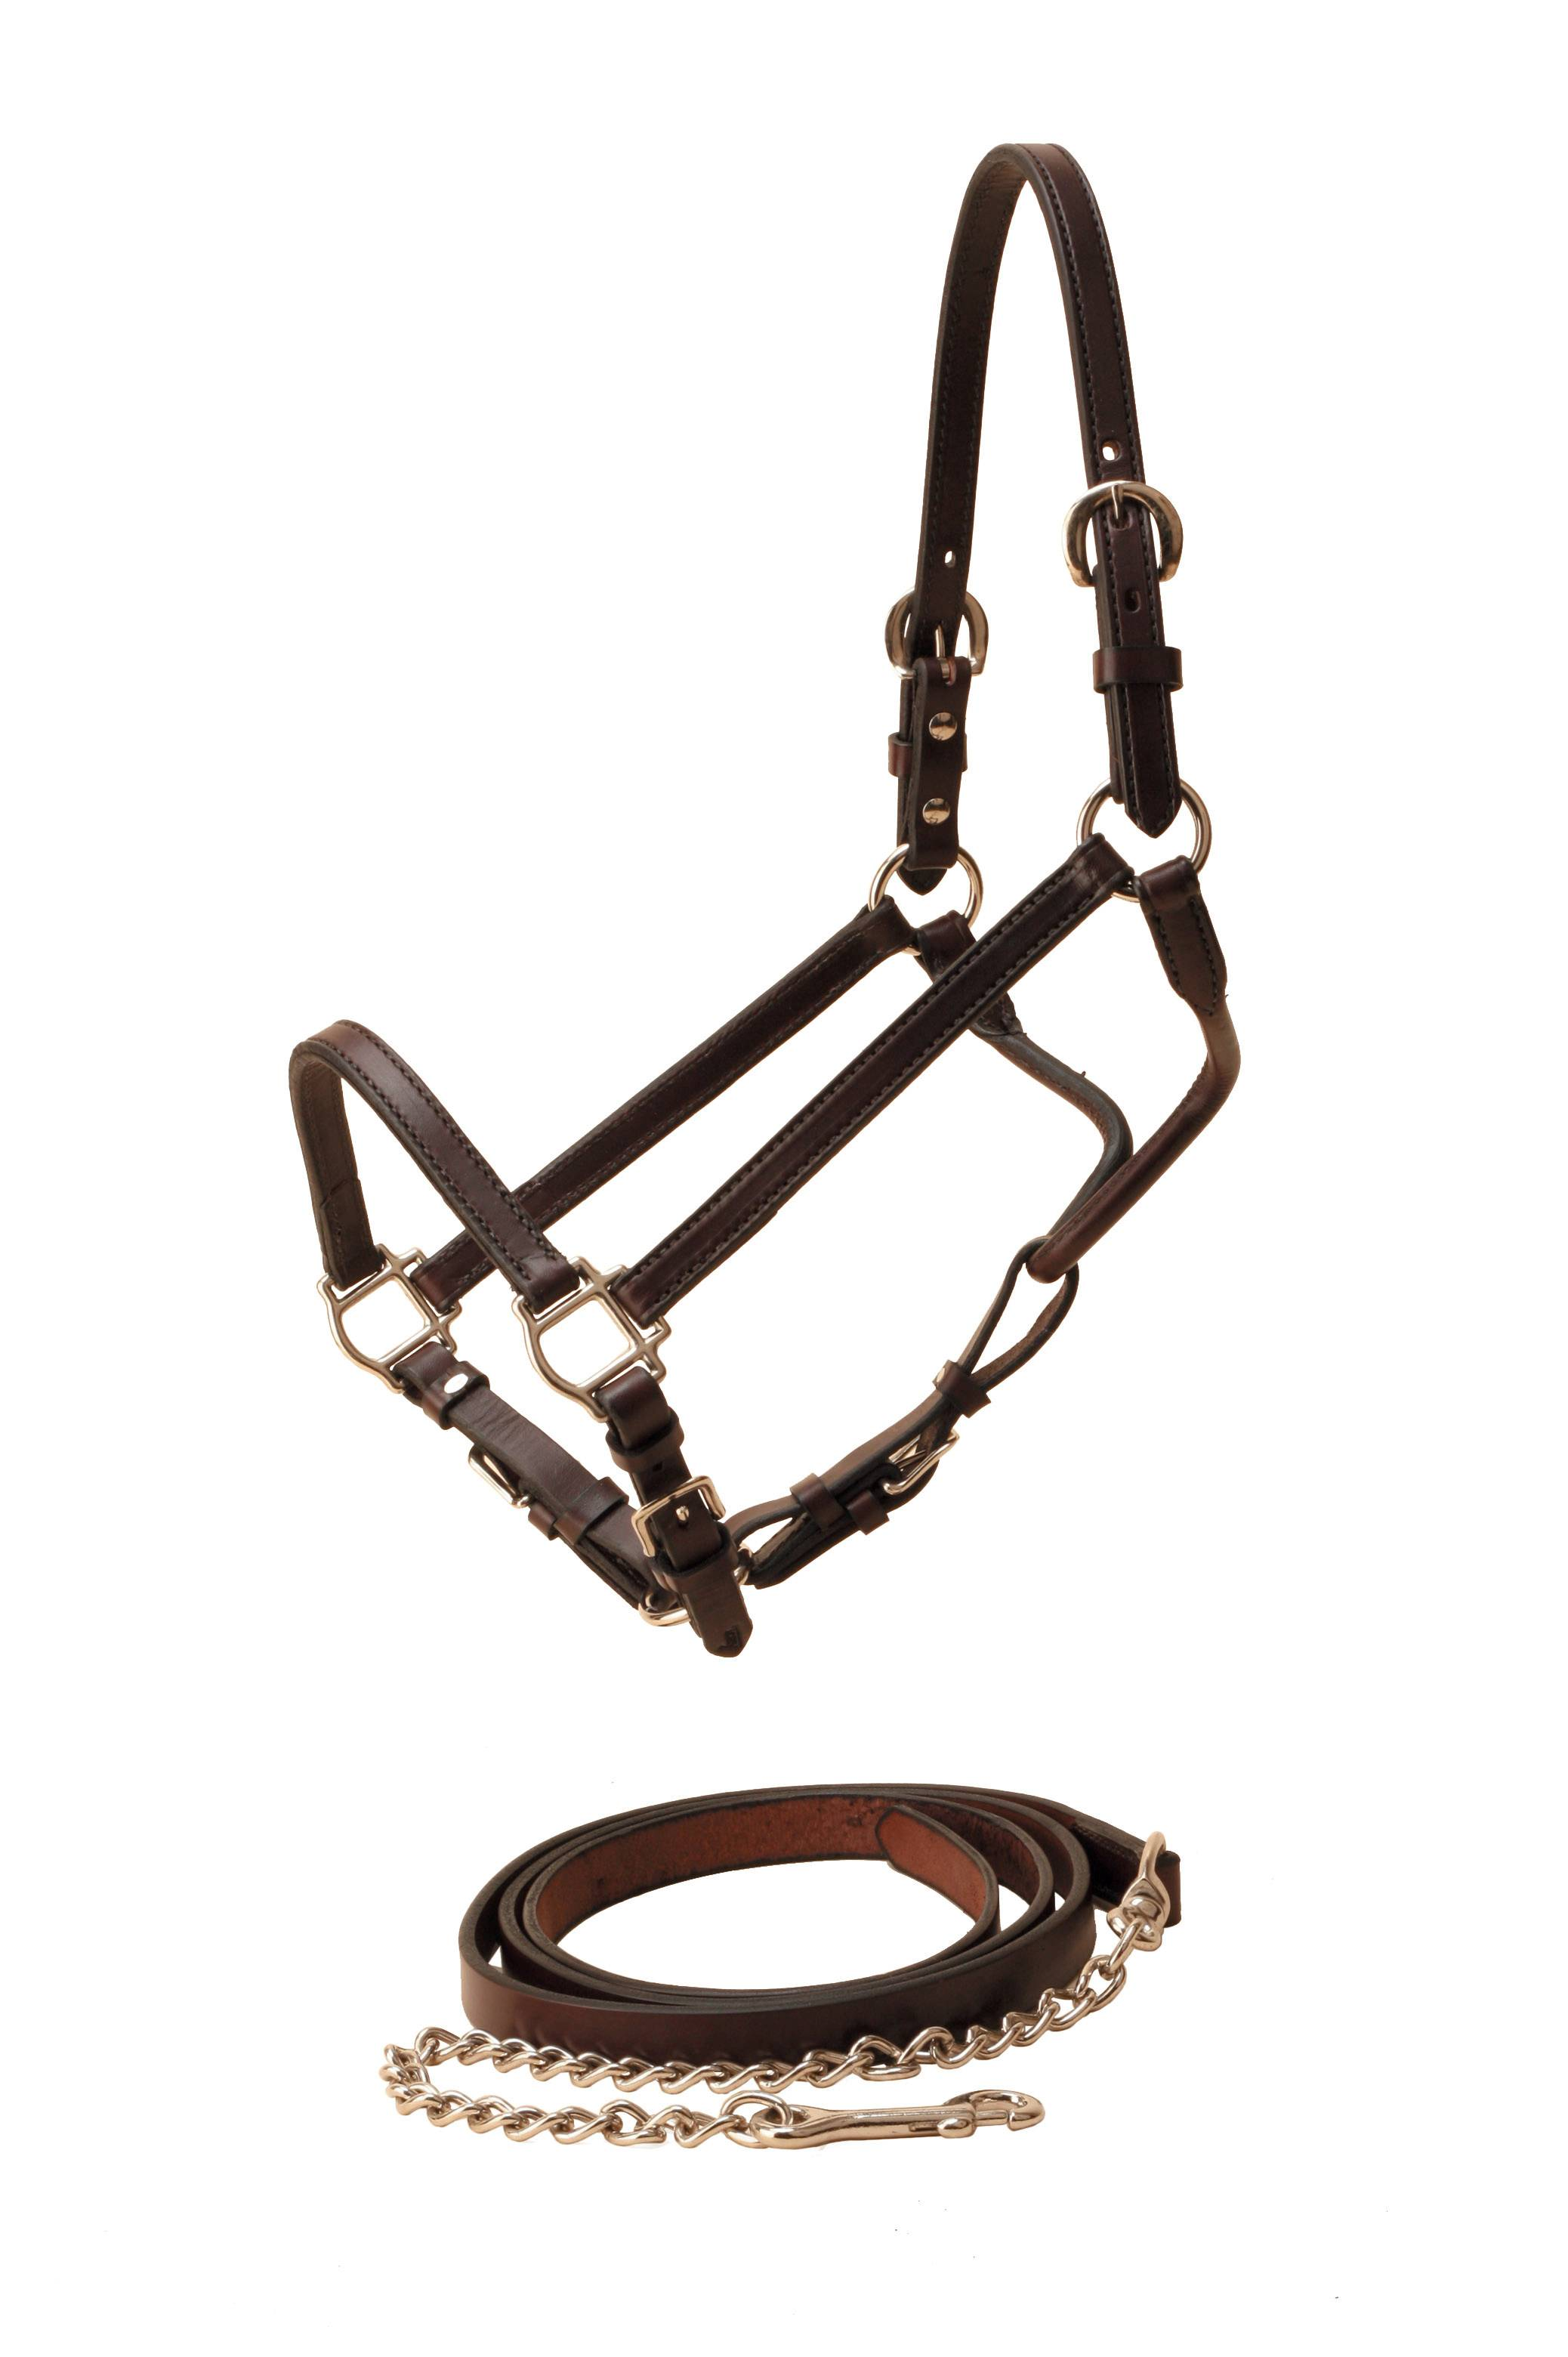 Tory Leather Show Halter & Chain Lead